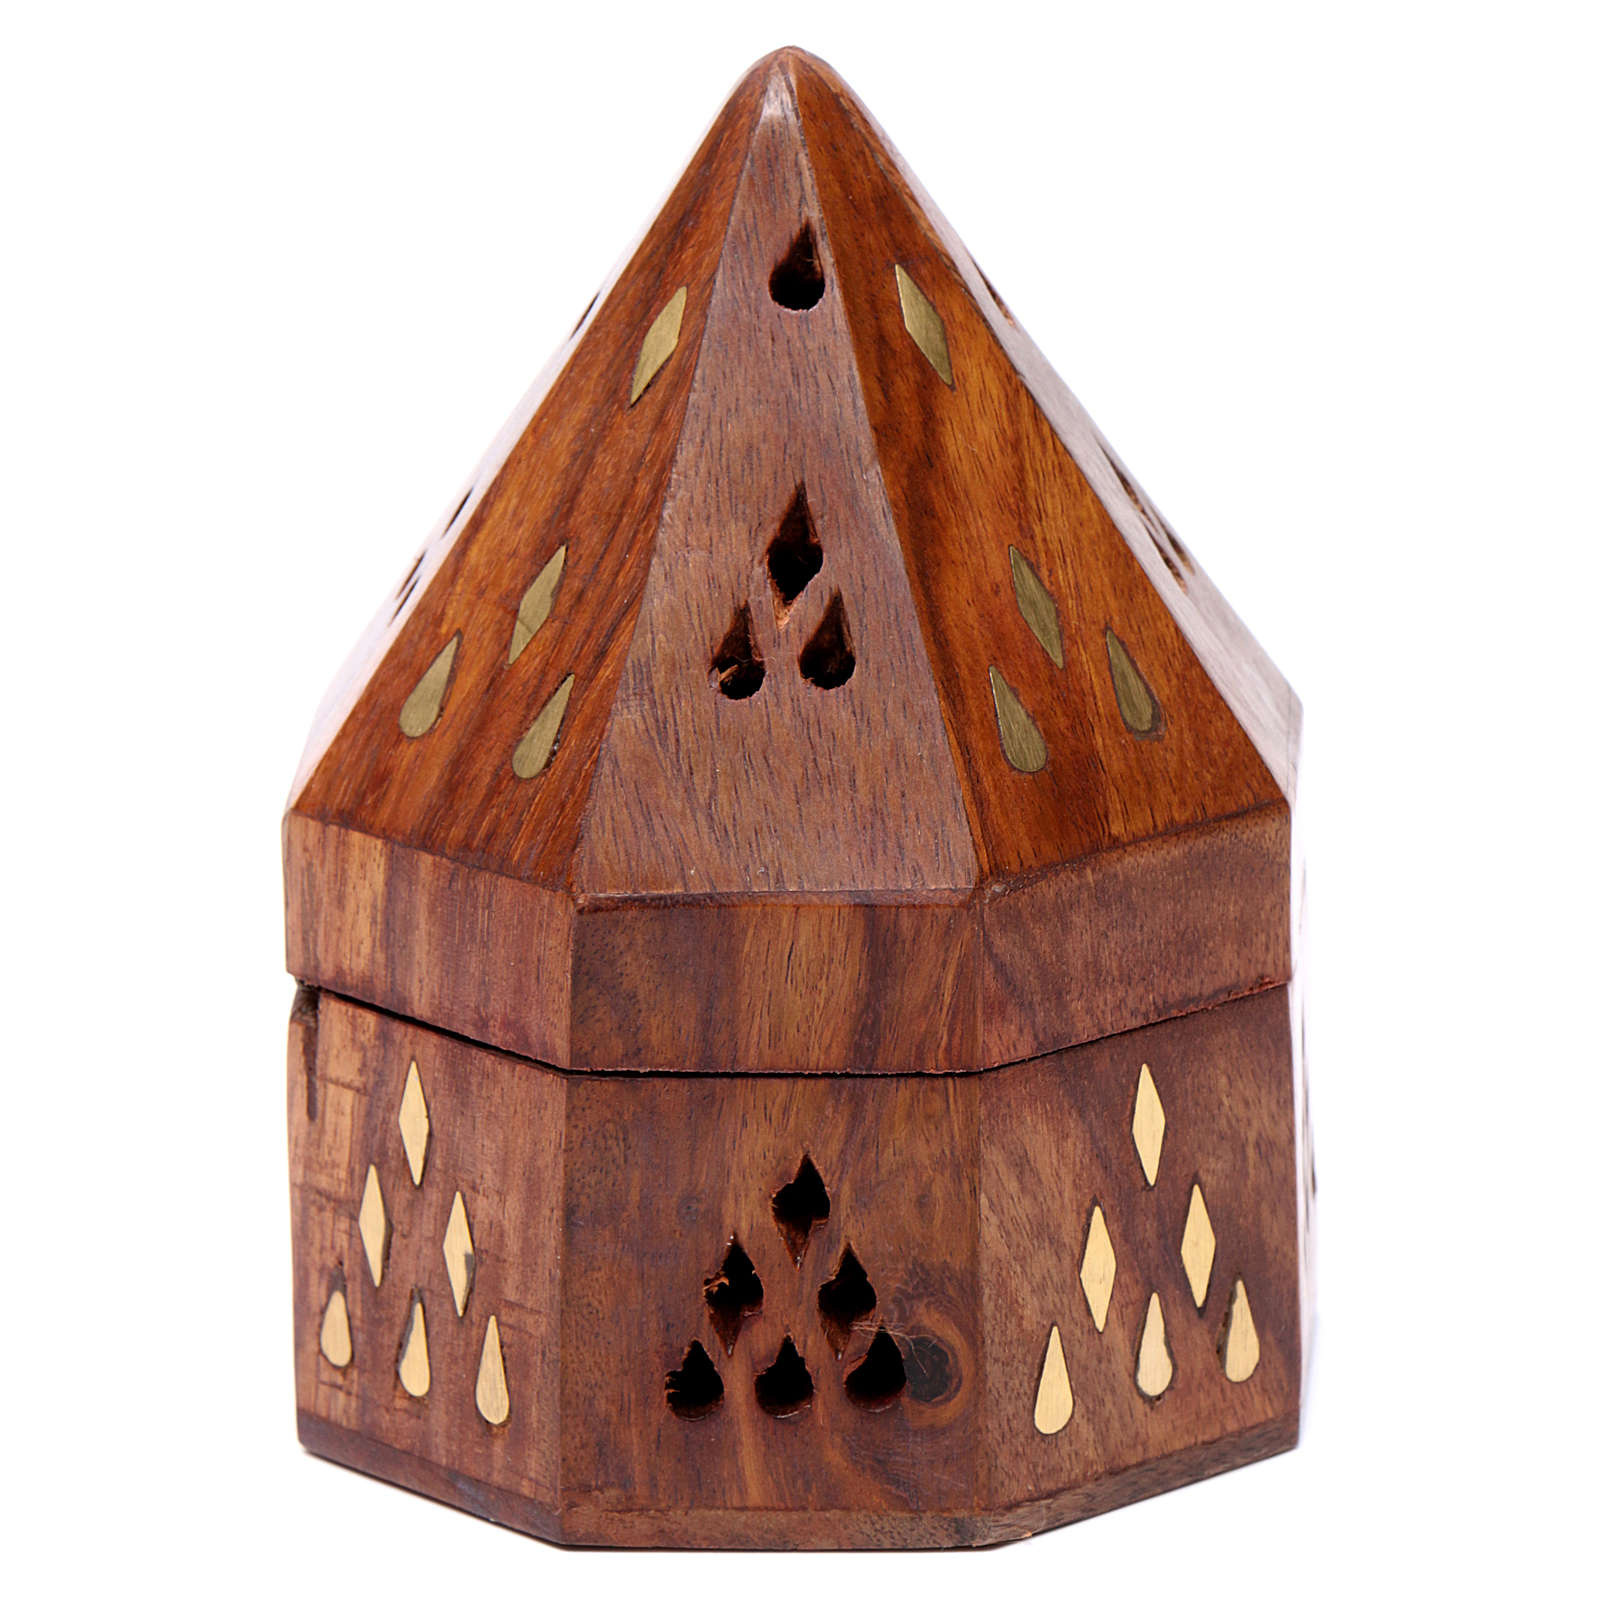 Indian incense burner in wood with metal burner 3